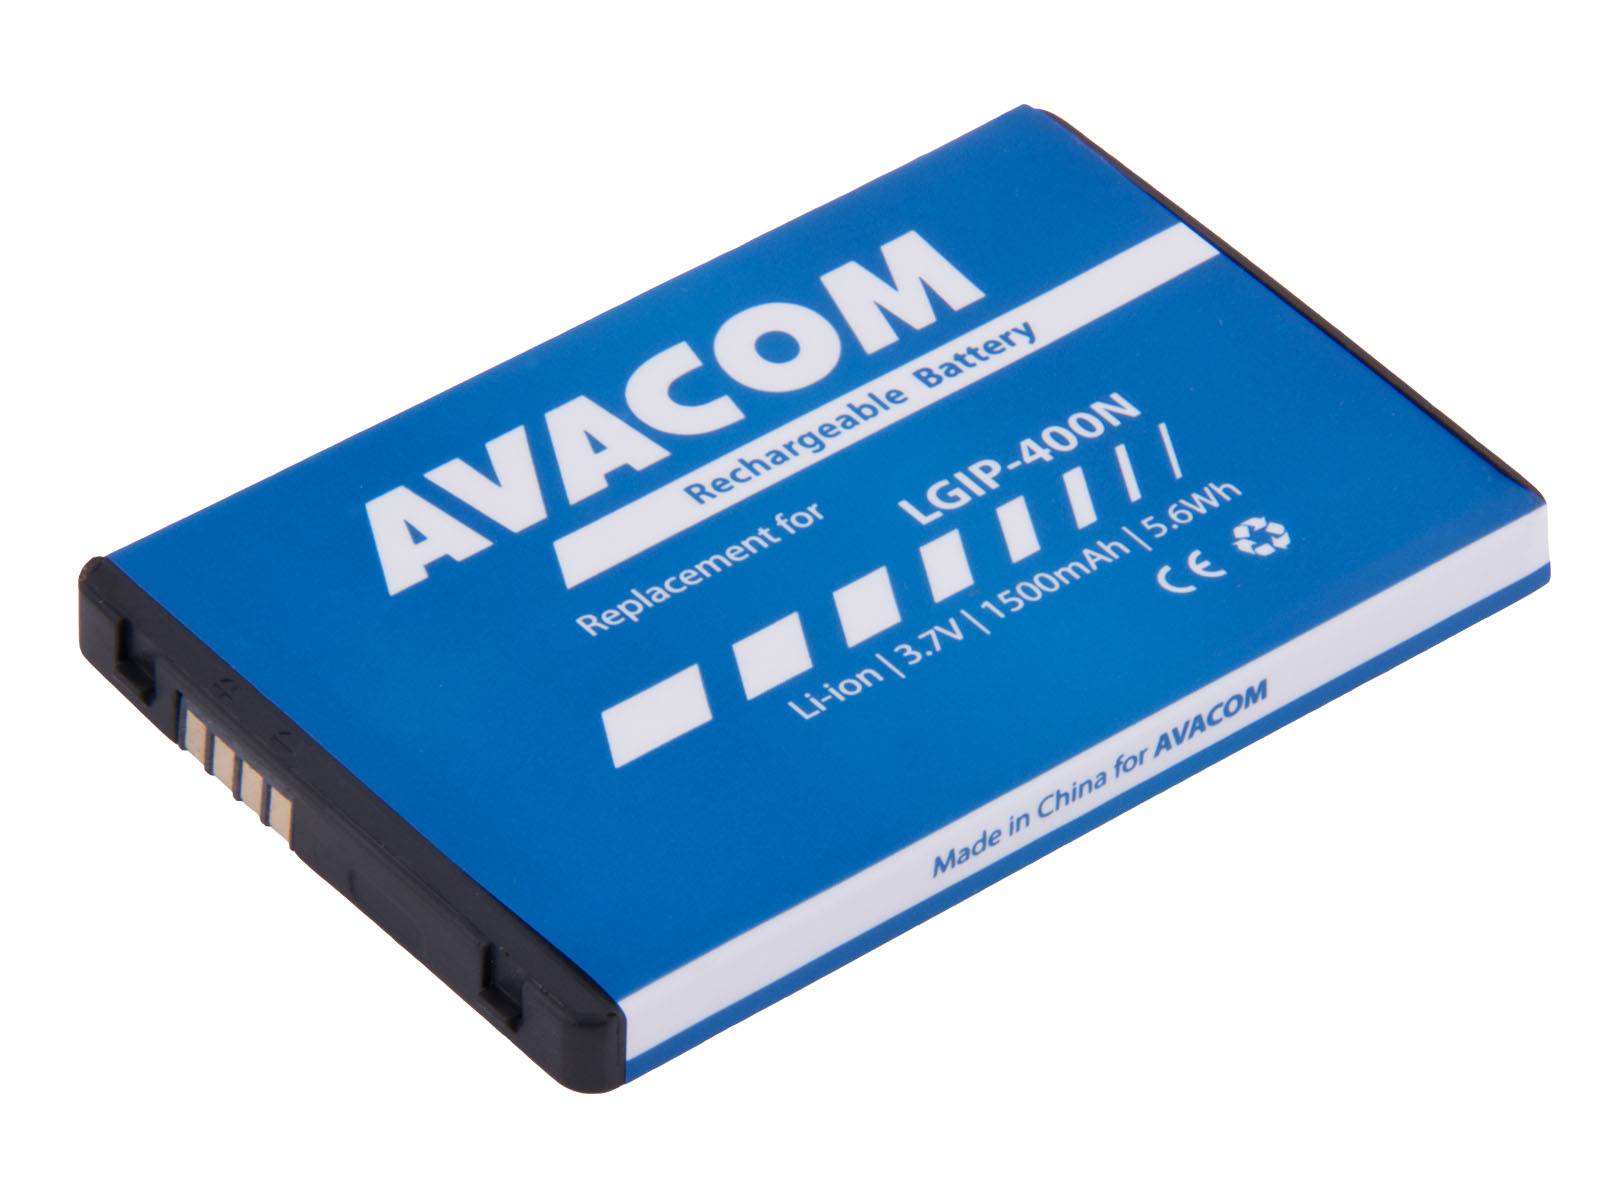 Baterie AVACOM GSLG-P500-1500 do mobilu LG P500 Optimus One Li-Ion 3,7V 1500mAh